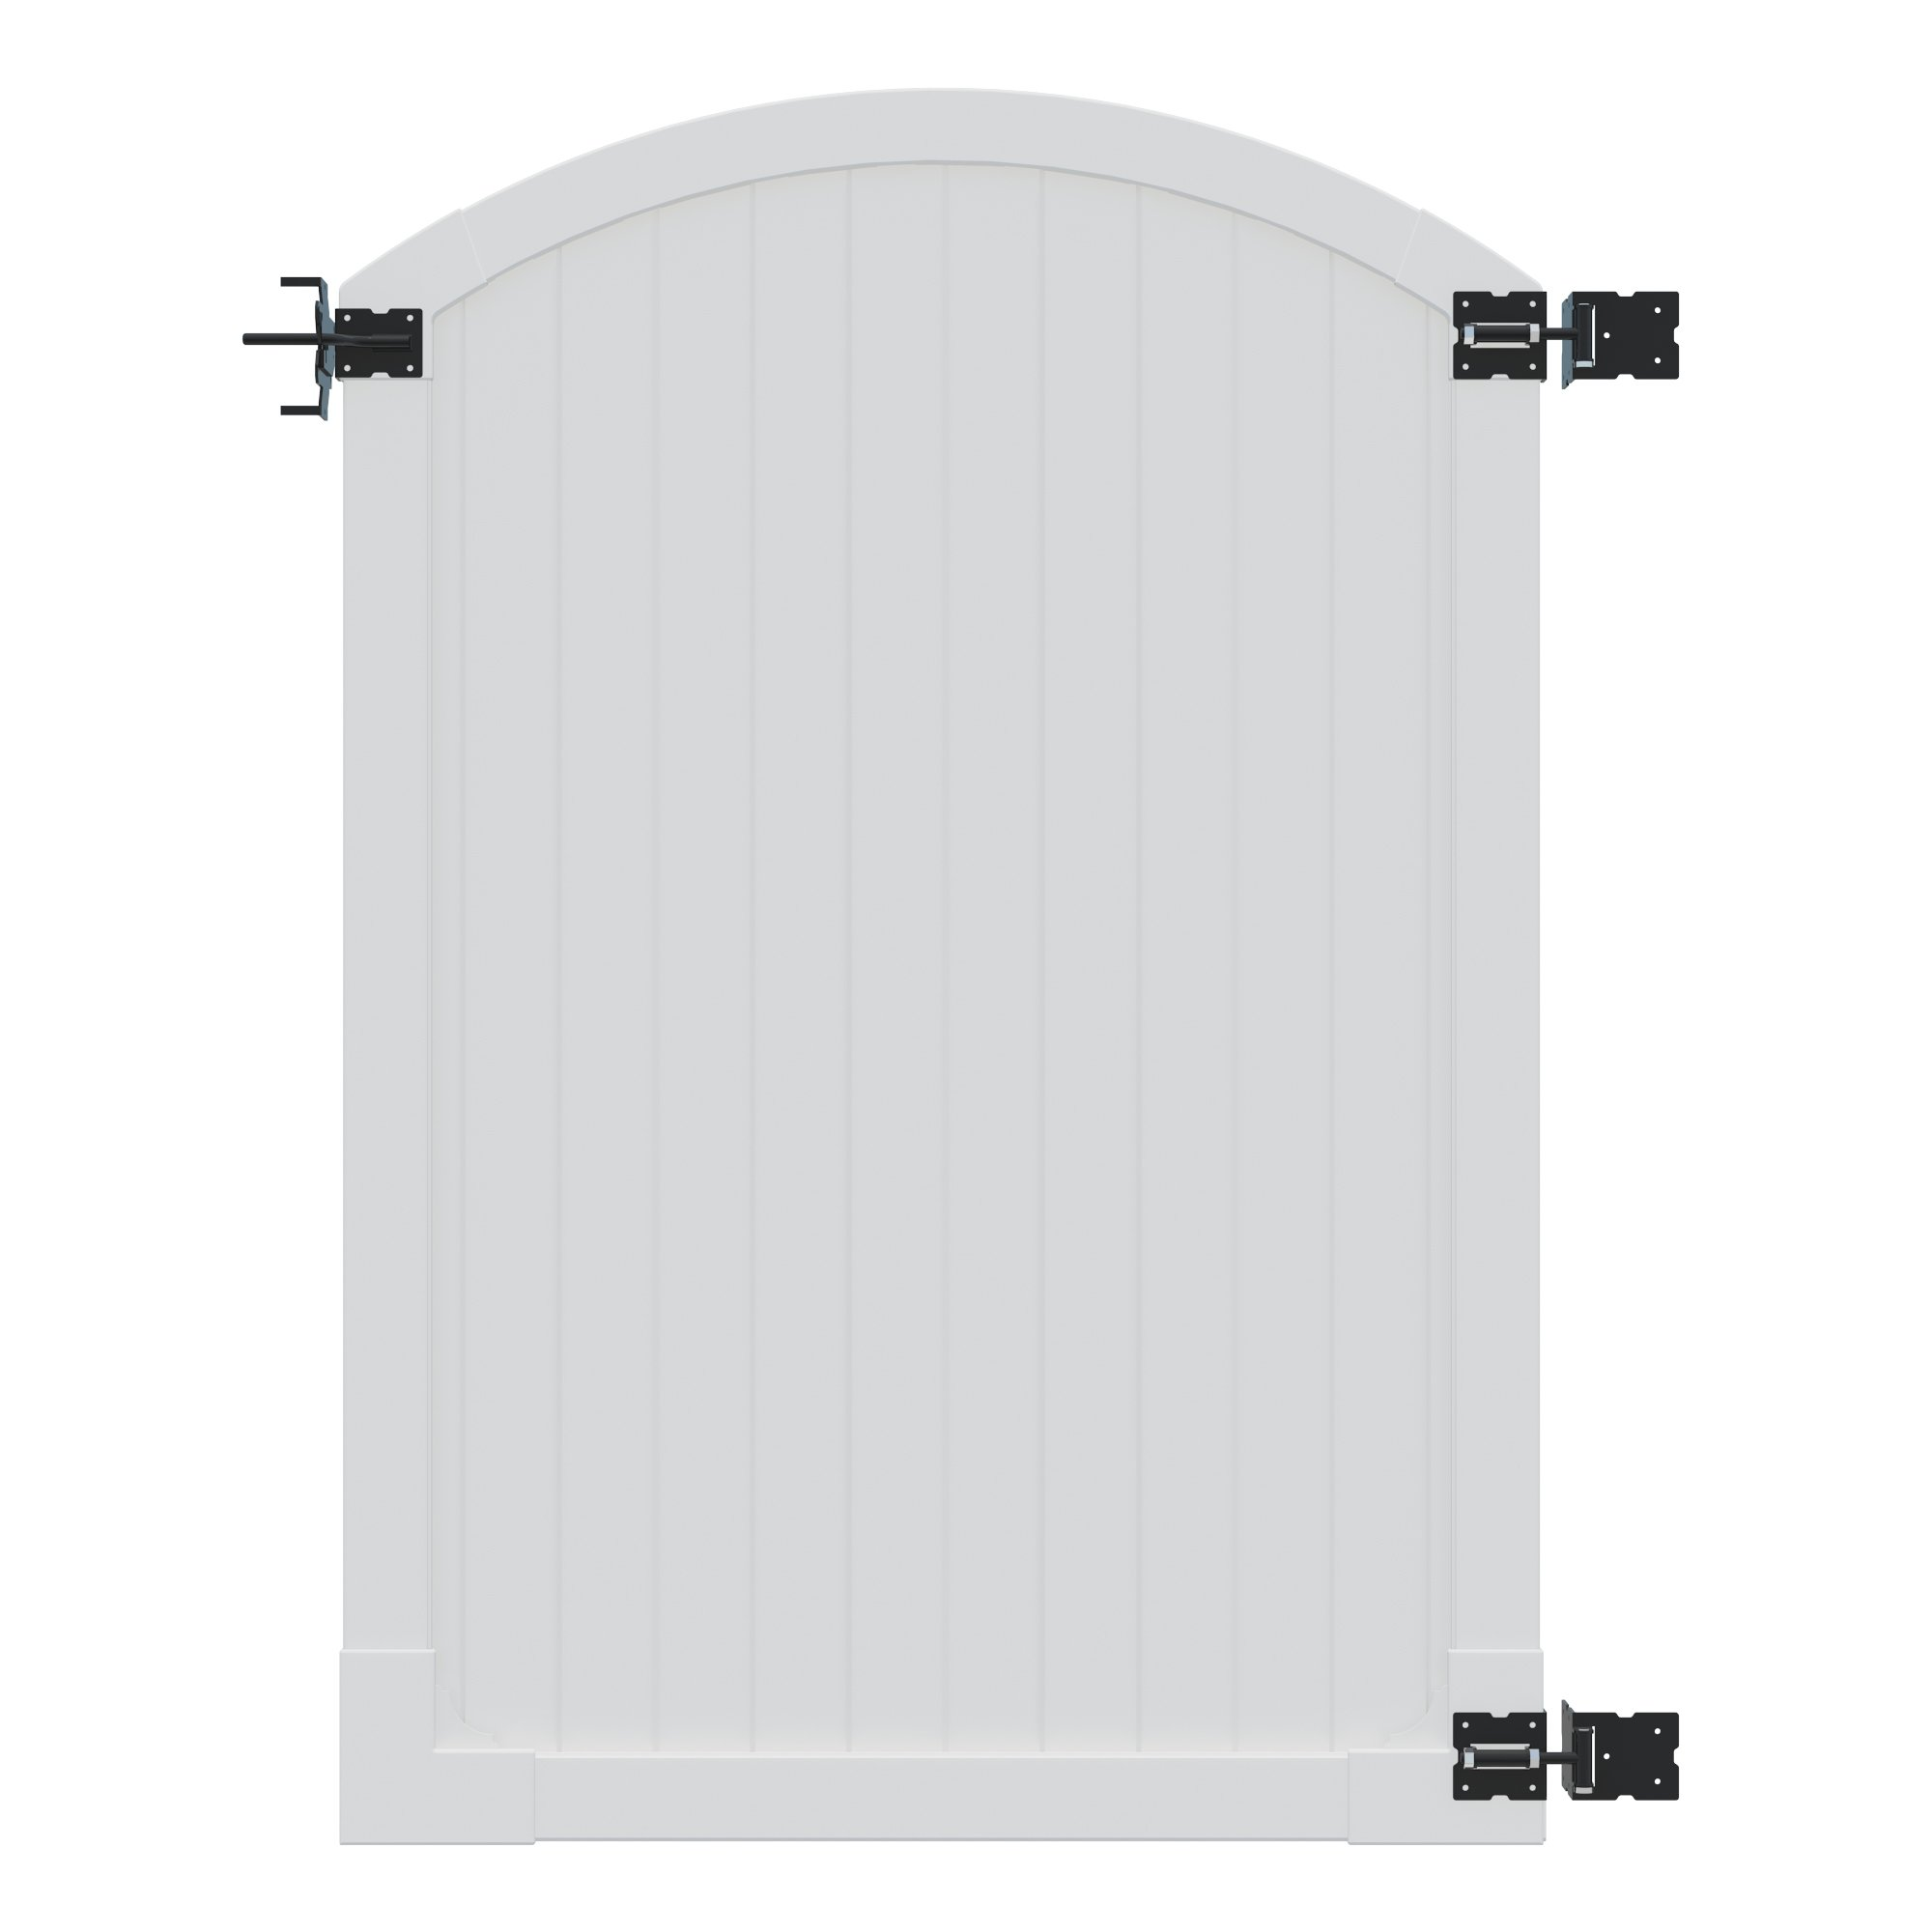 WamBam Traditional 6 by 4-Feet Premium Vinyl Arched Vinyl Gate with Powder Coated Stainless Steel Hardware by WamBam Traditional